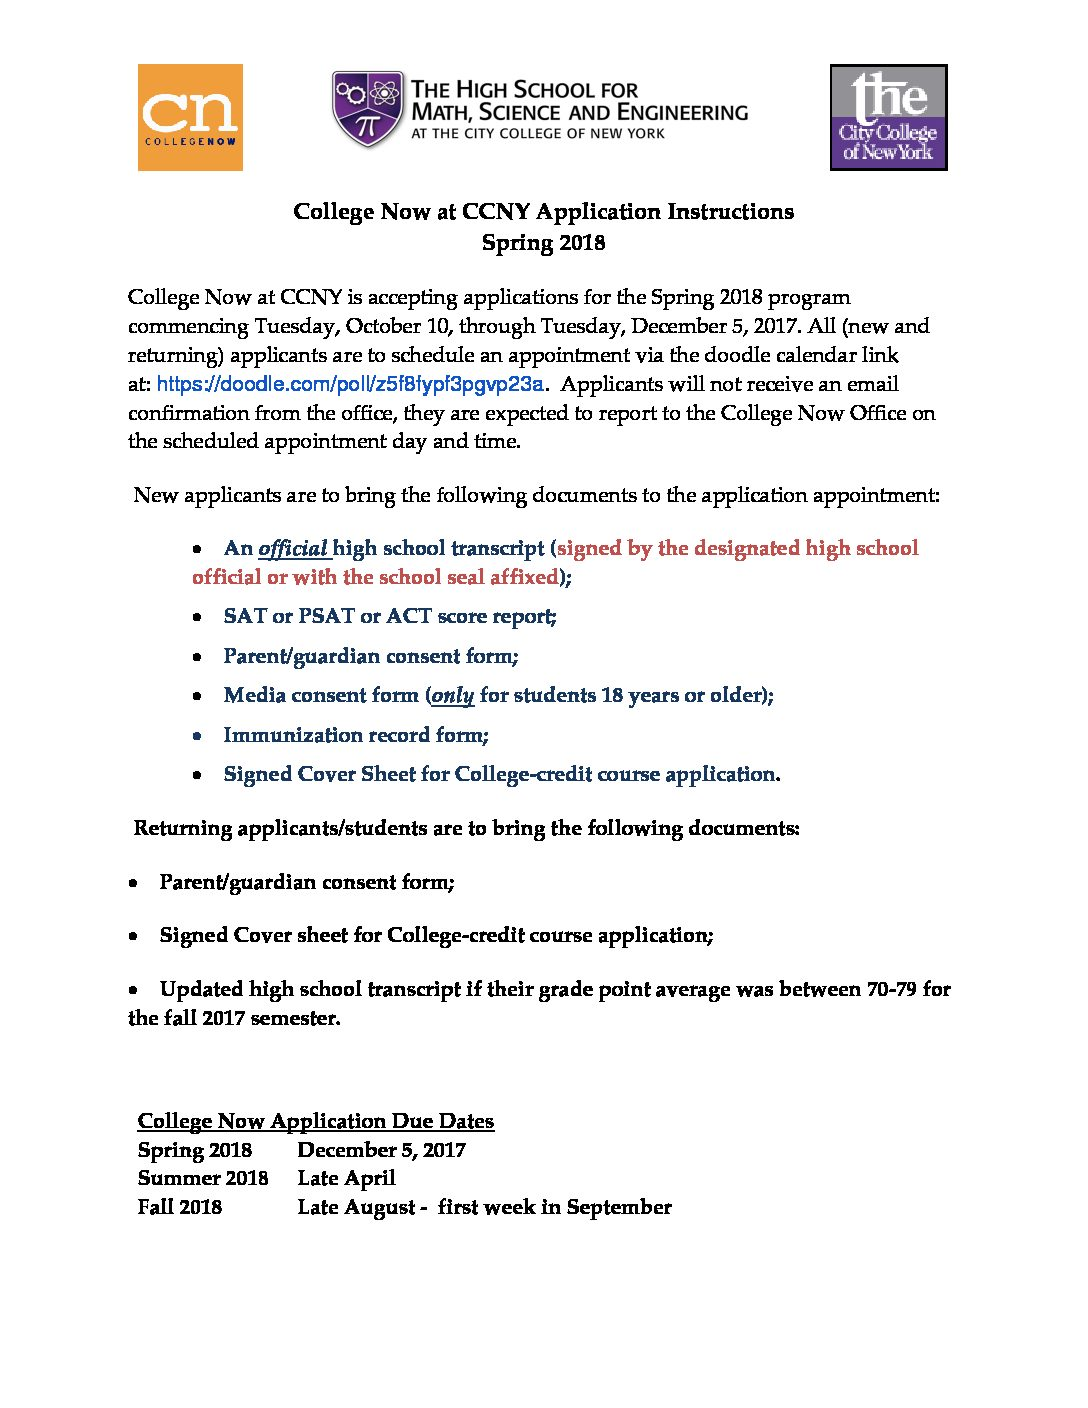 College-Now-@-CCNY-ApplicationInstructions-for-Spring-2018 | HSMSE